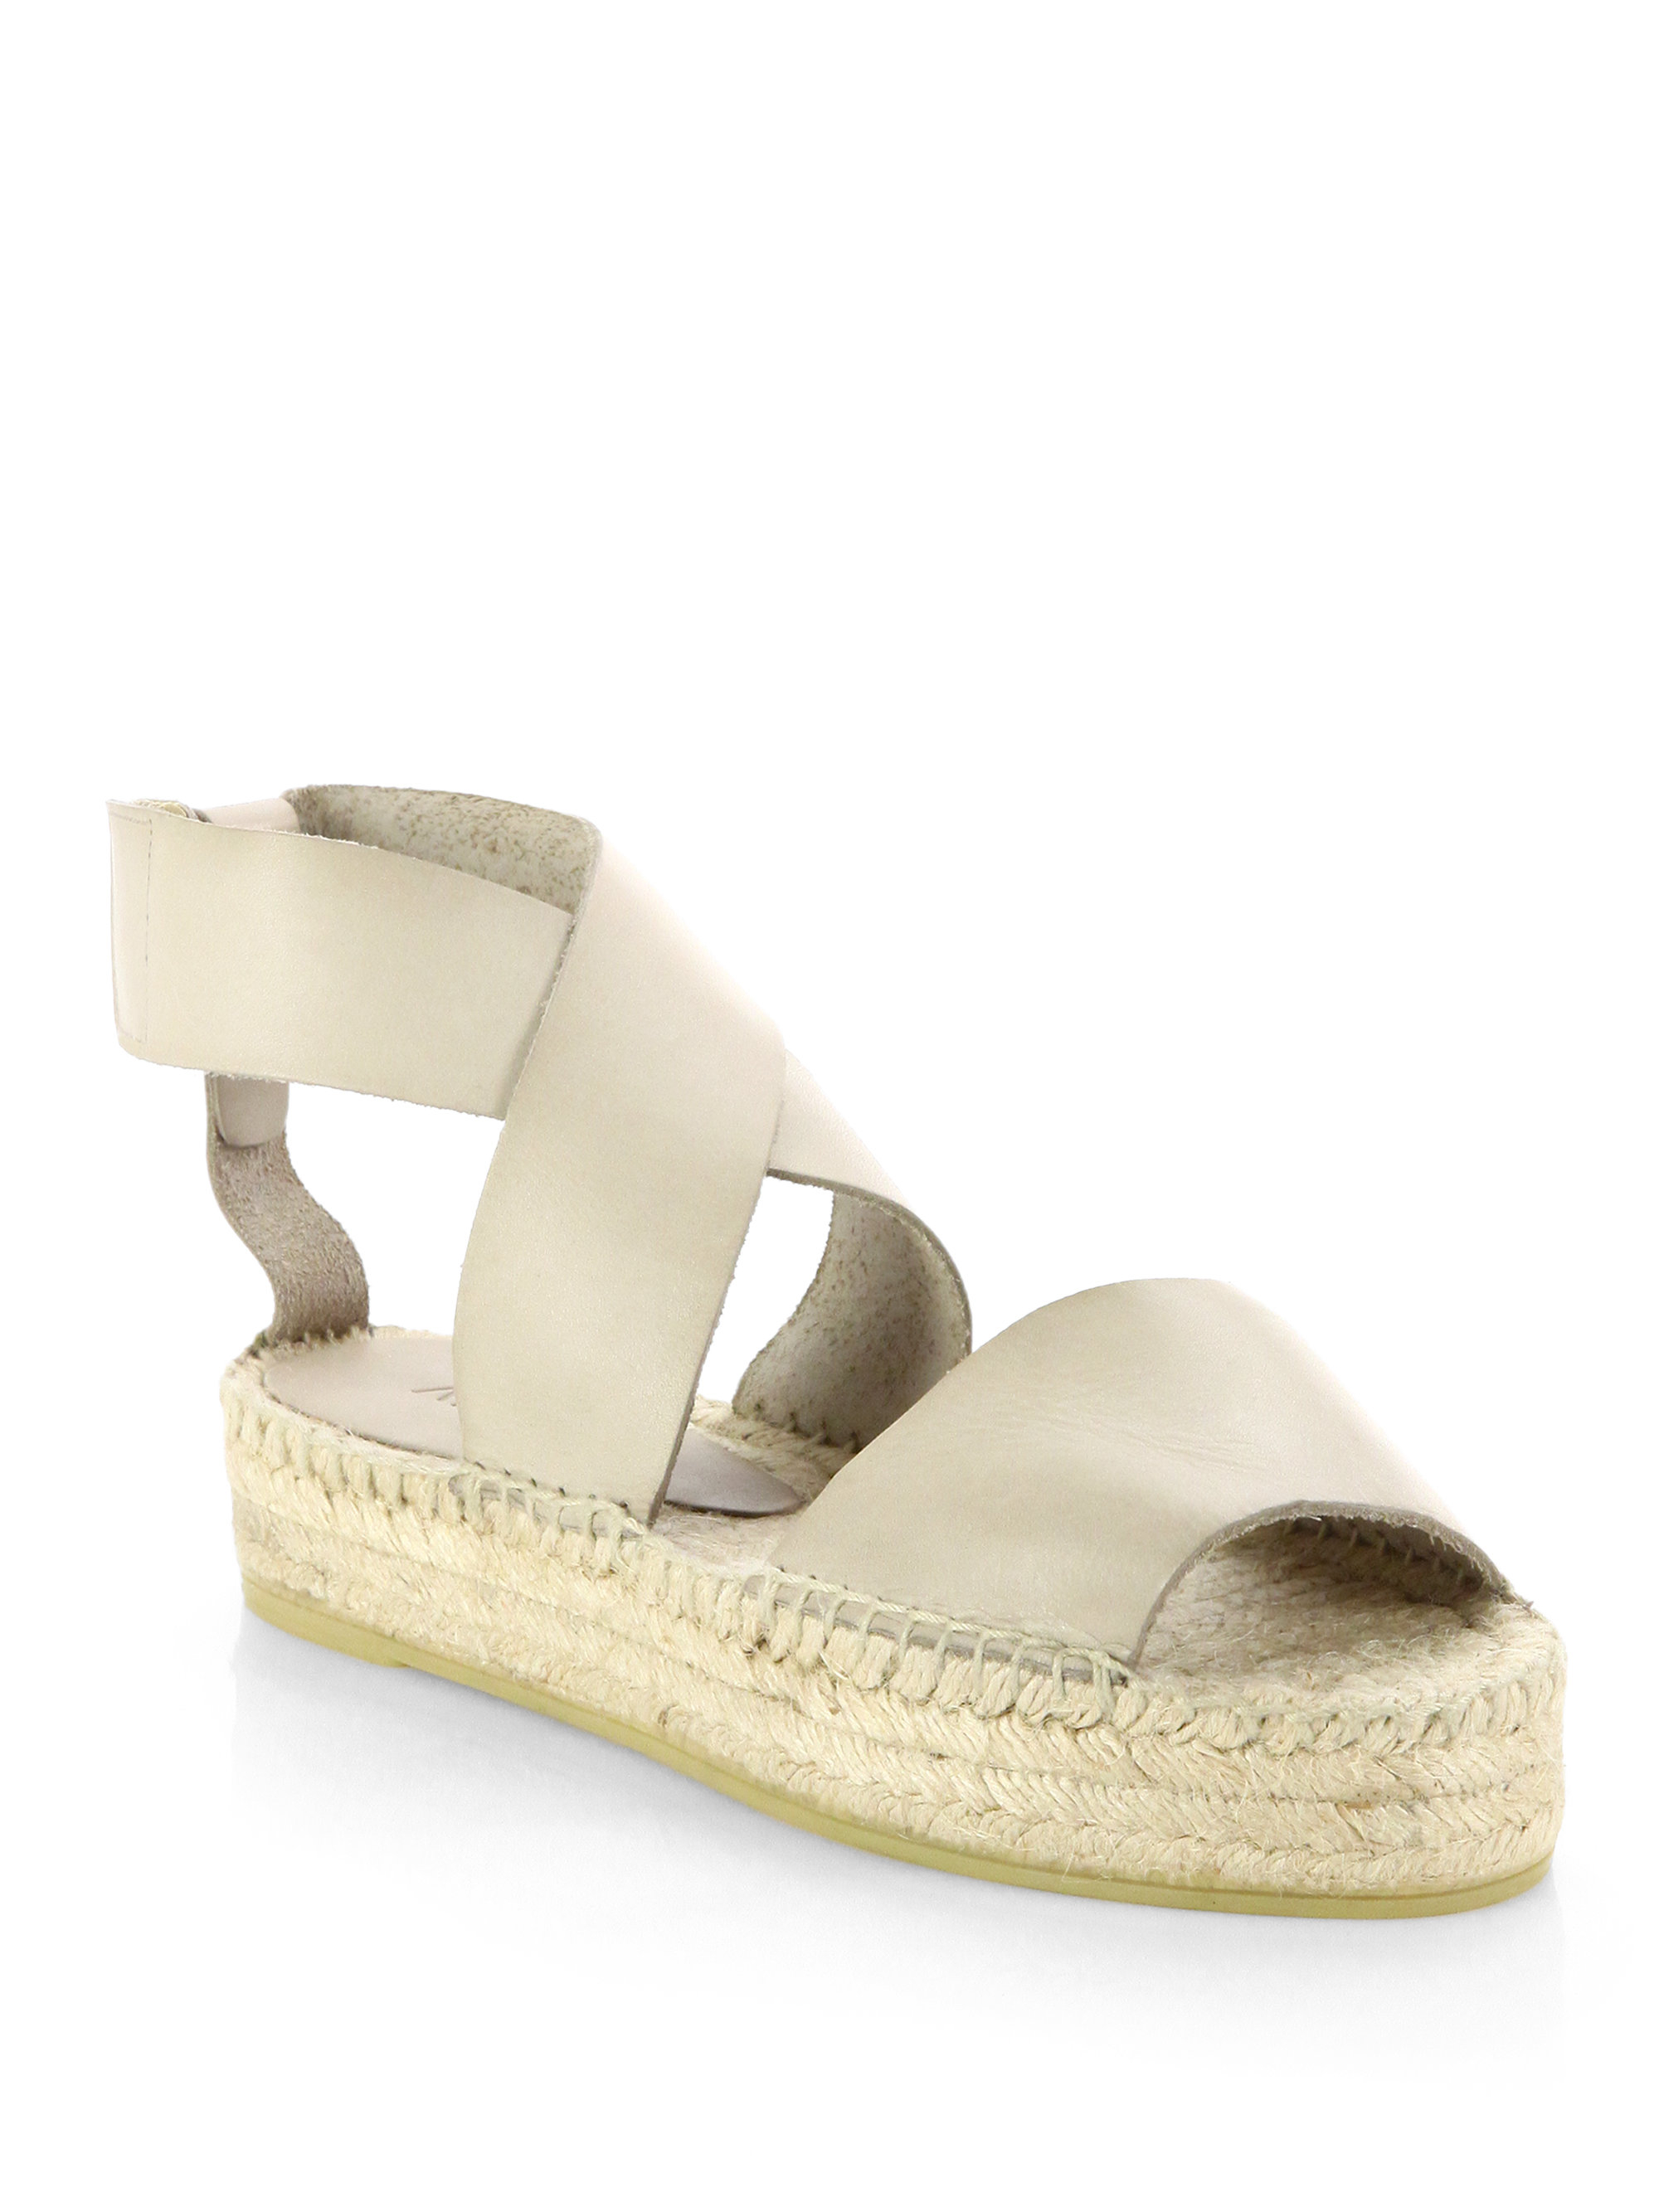 4660ef9f1af5c Lyst - Vince Elise Leather Espadrille Sandals in Natural